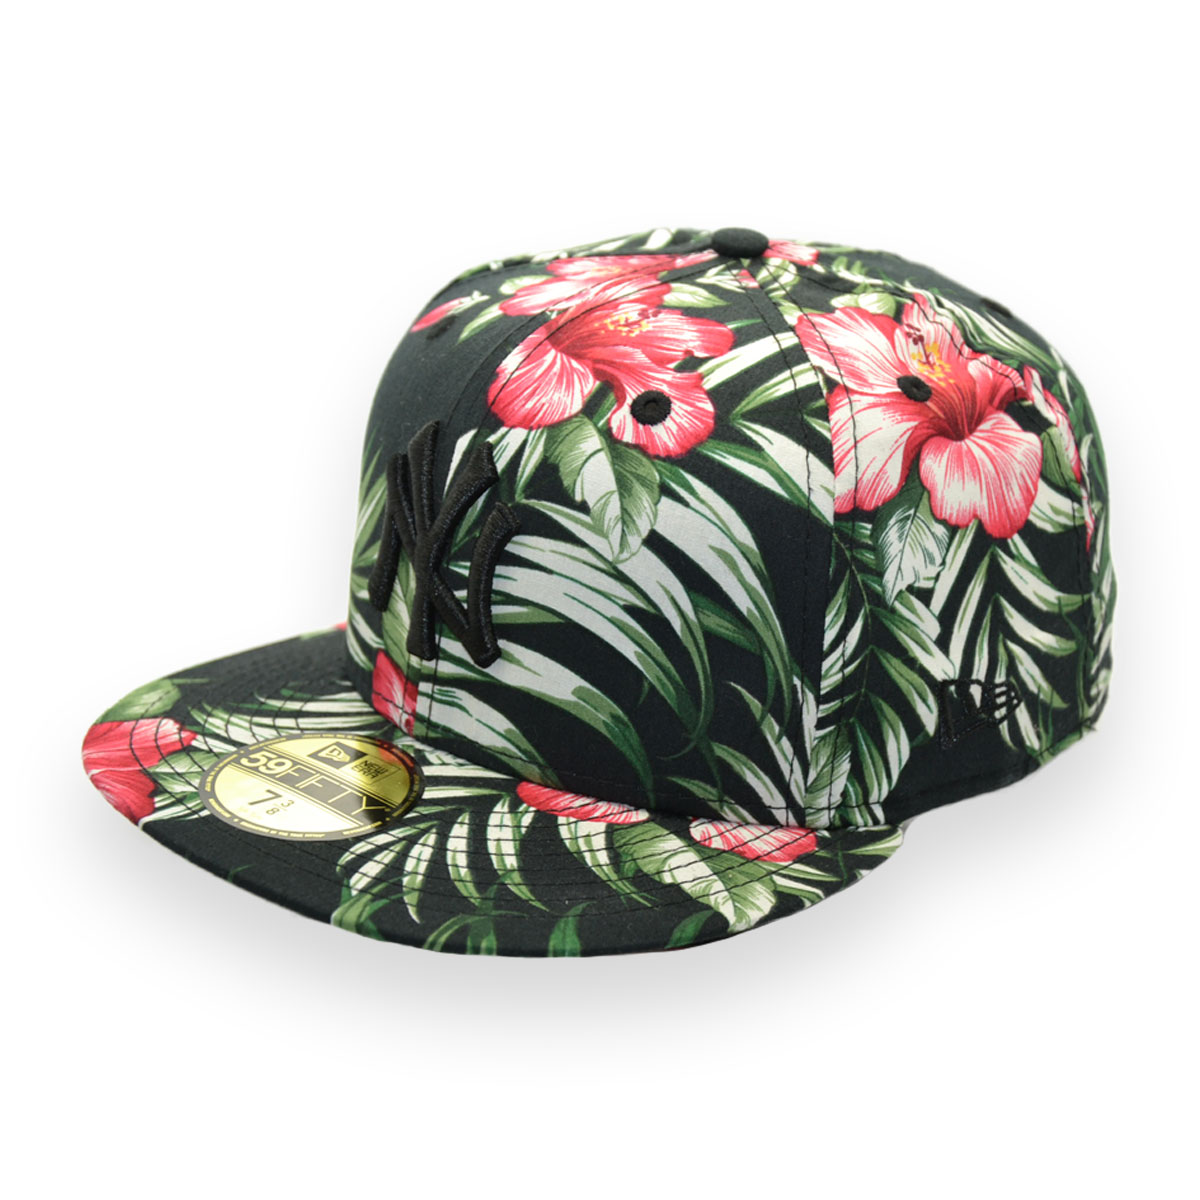 44c2b6e5865d8 NEW ERA JAPAN NEW YORK YANKEES ALOHA FLORAL 59FIFTY MLB CAP - MyCraze